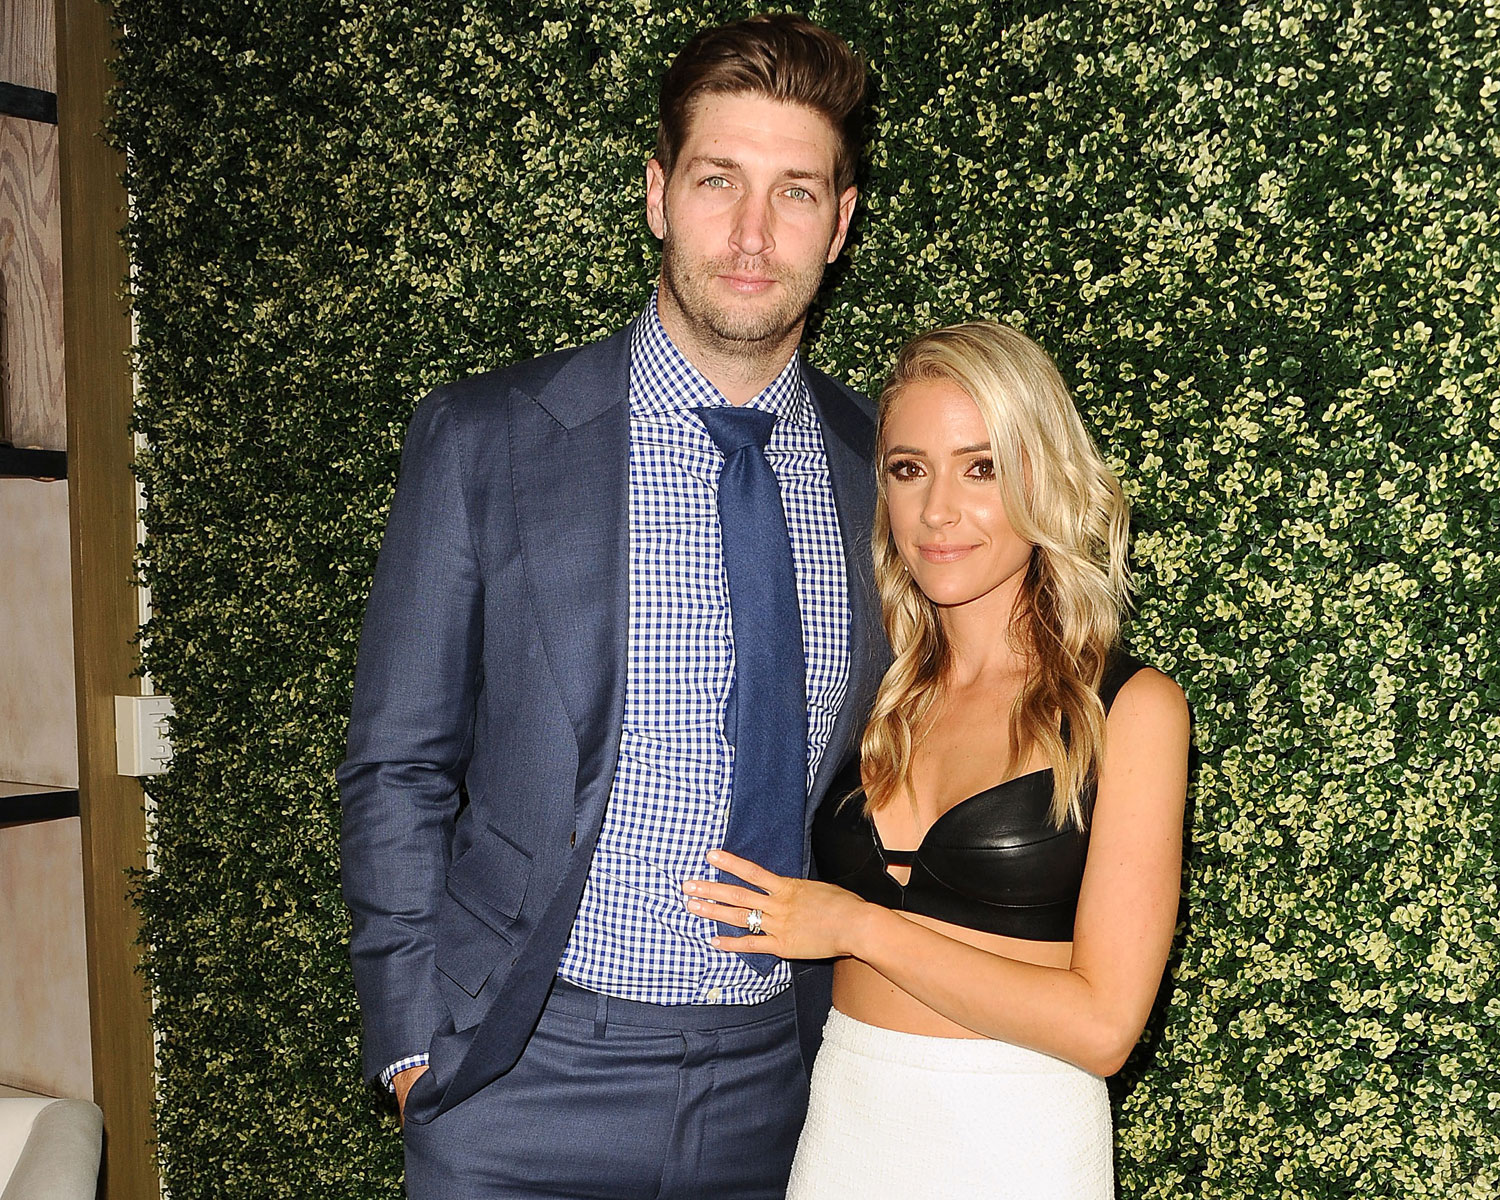 Jay Cutler with beautiful, Wife Kristin Cavallari